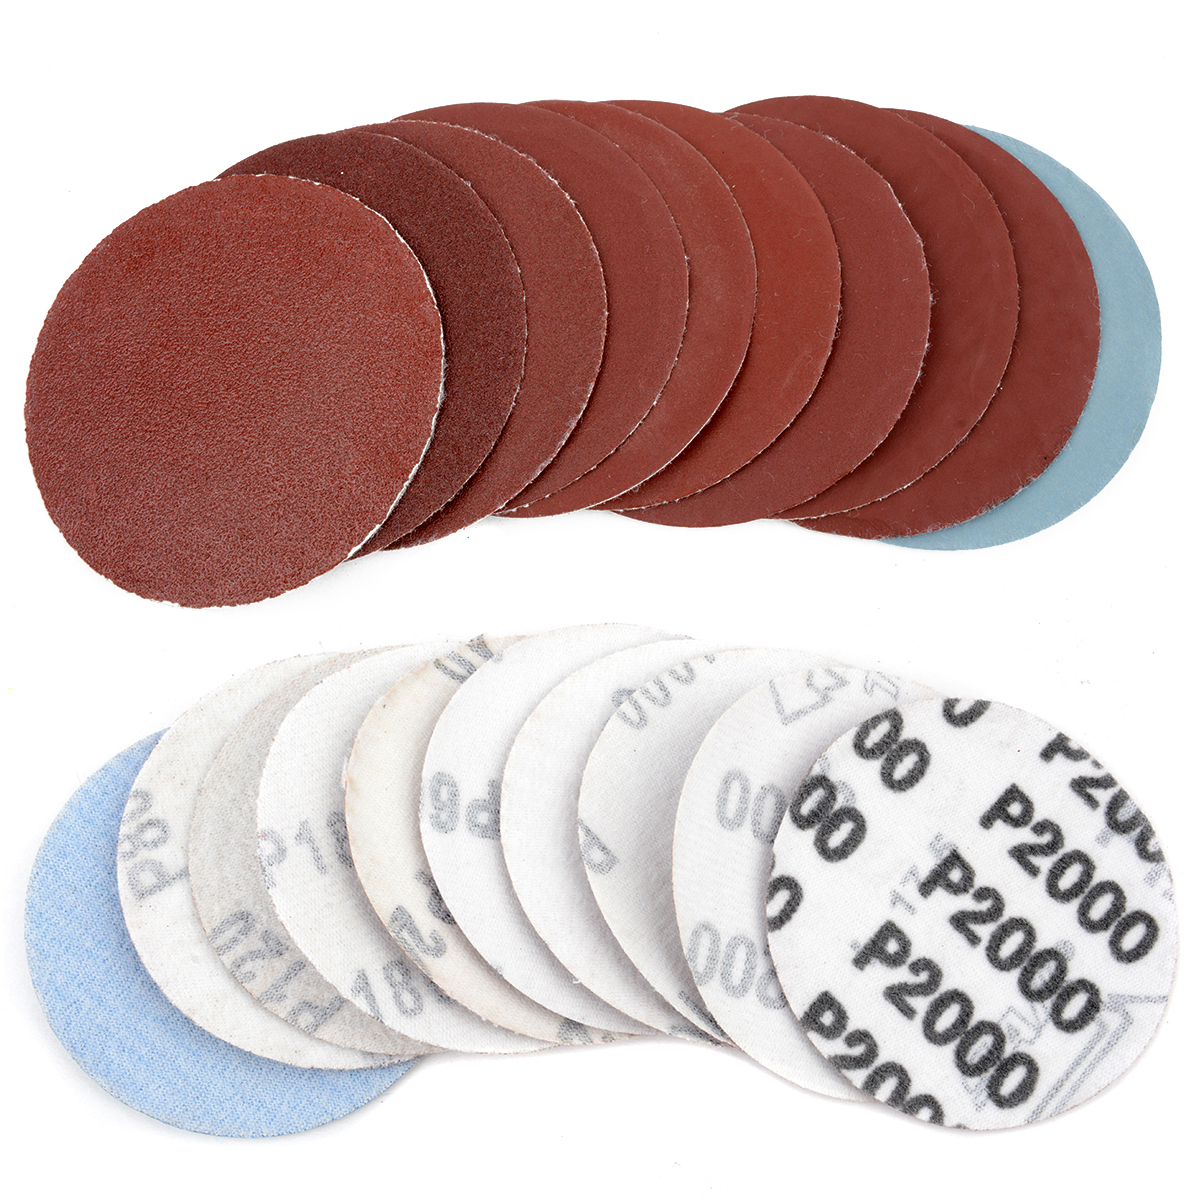 100Pcs <font><b>75mm</b></font> Round Sandpaper 3